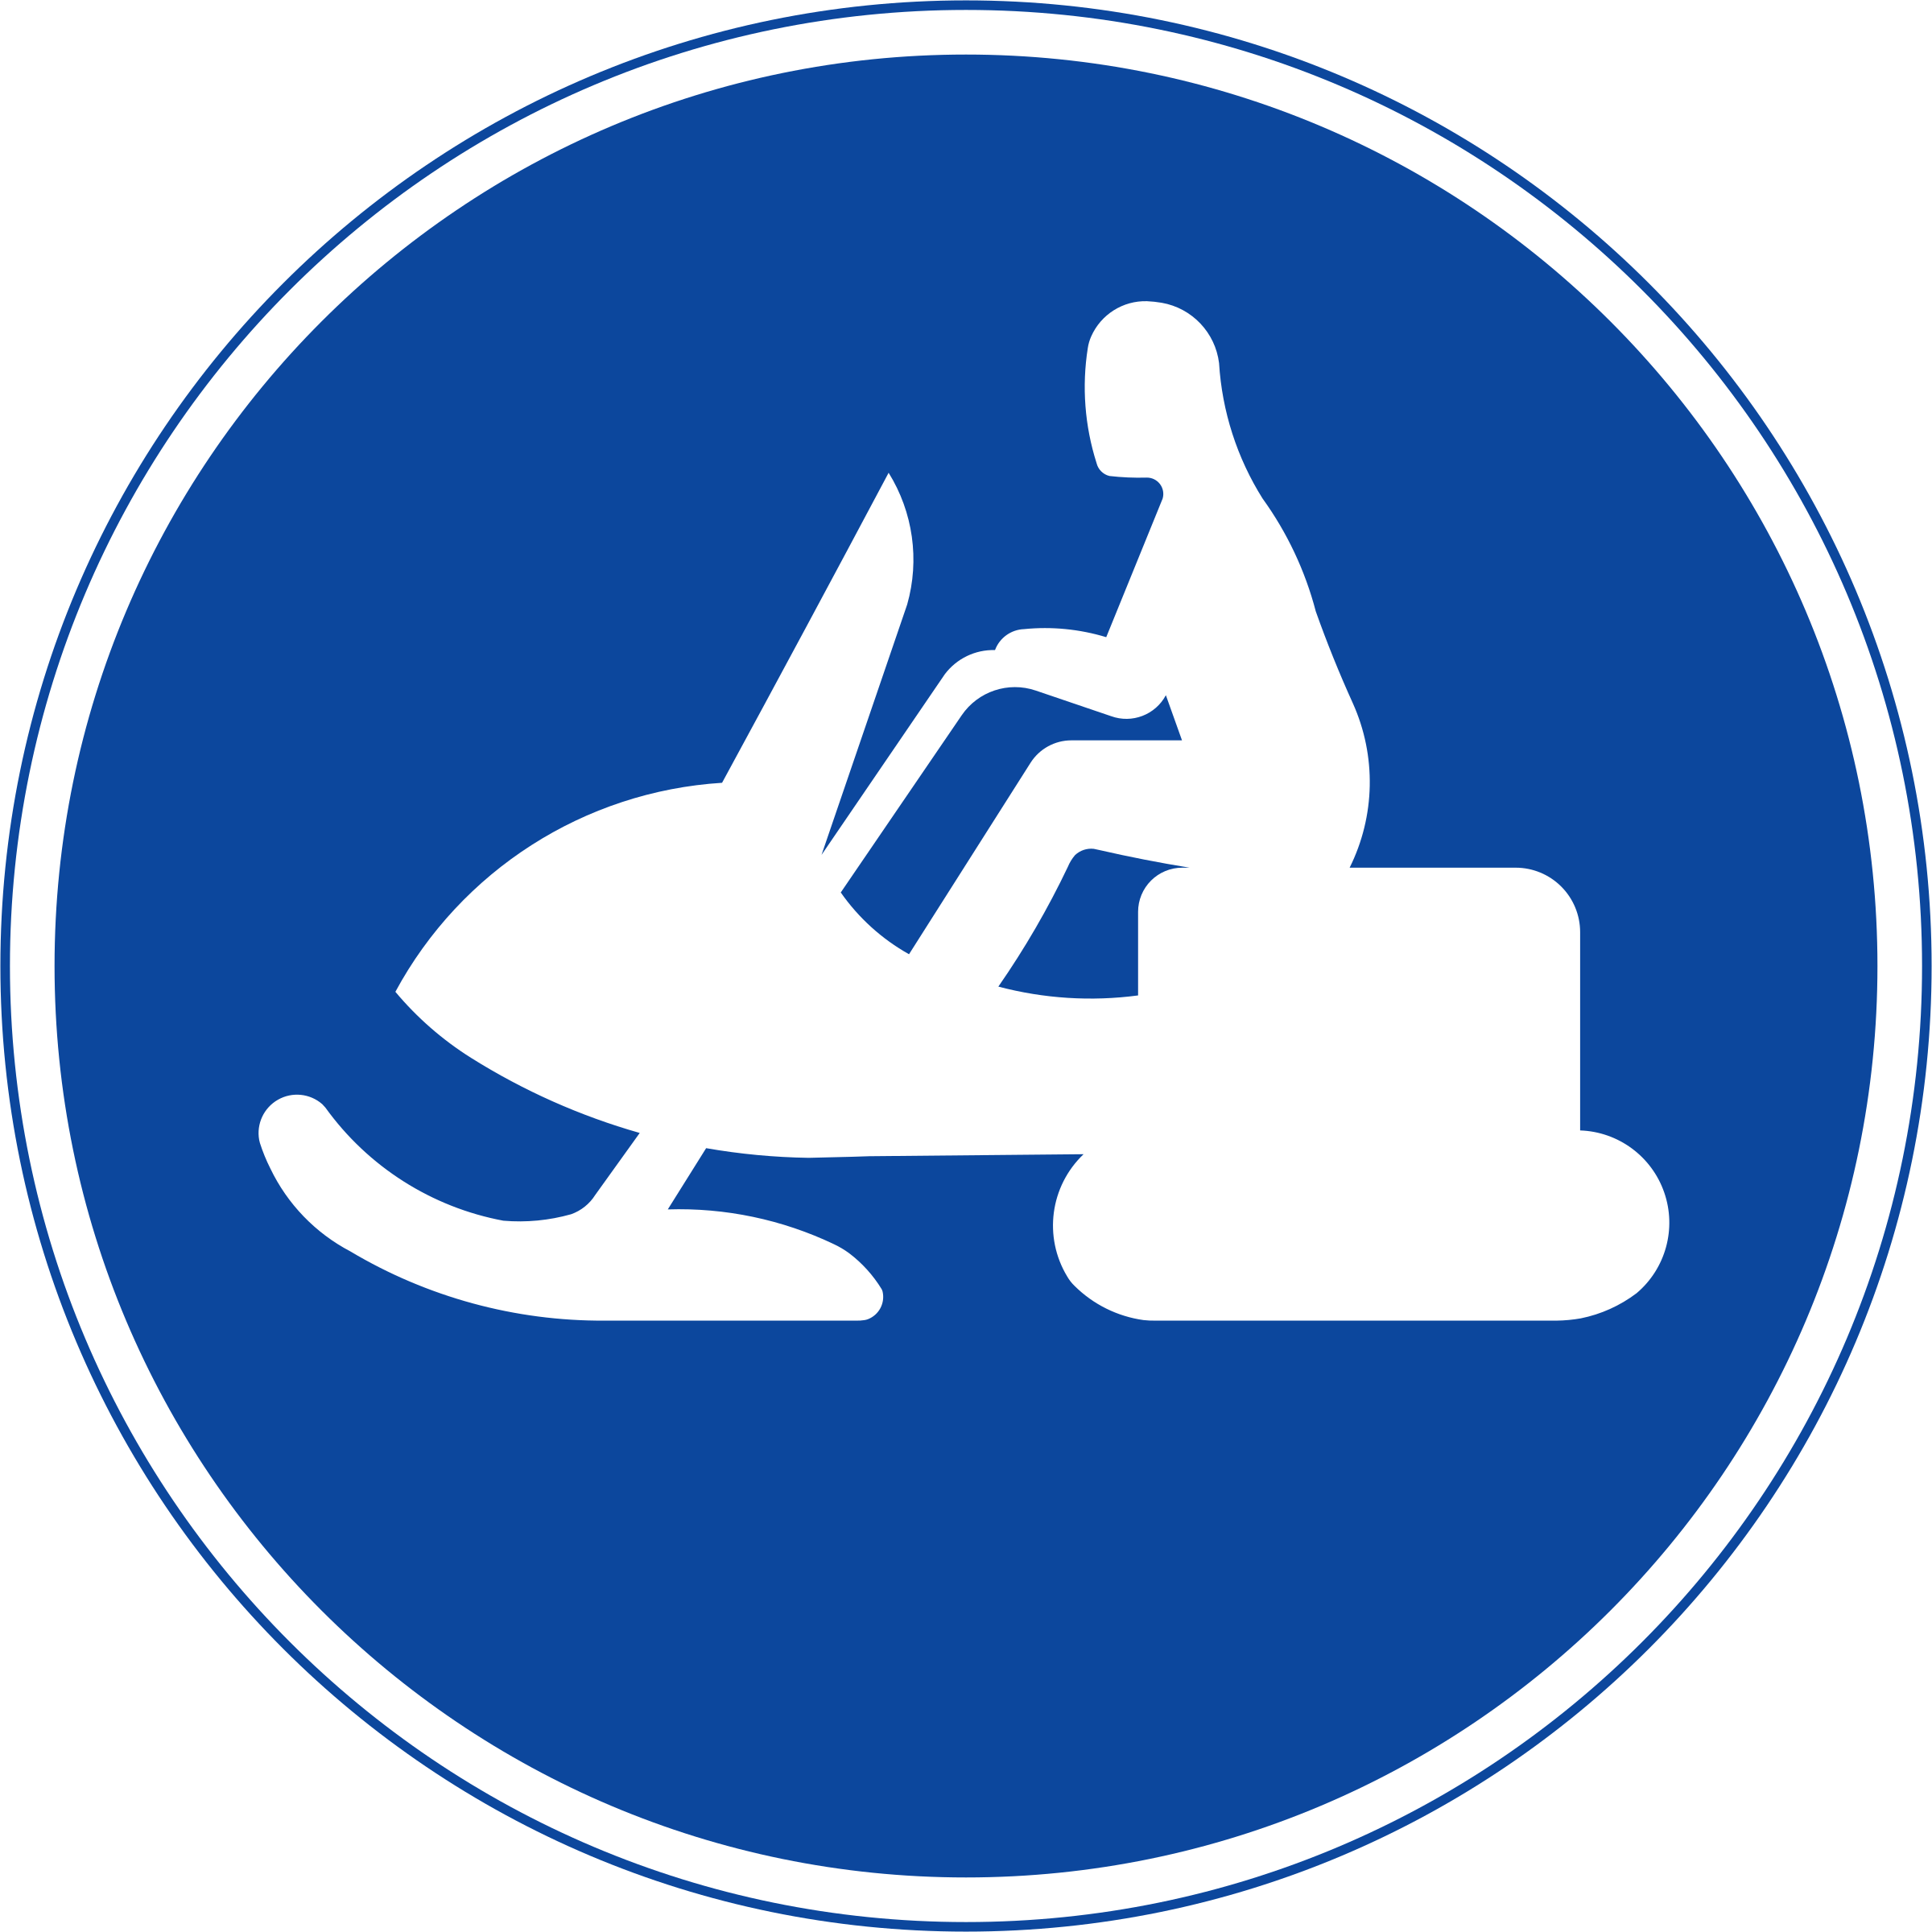 Snowmobile clipart snow mobile. Sign big image png